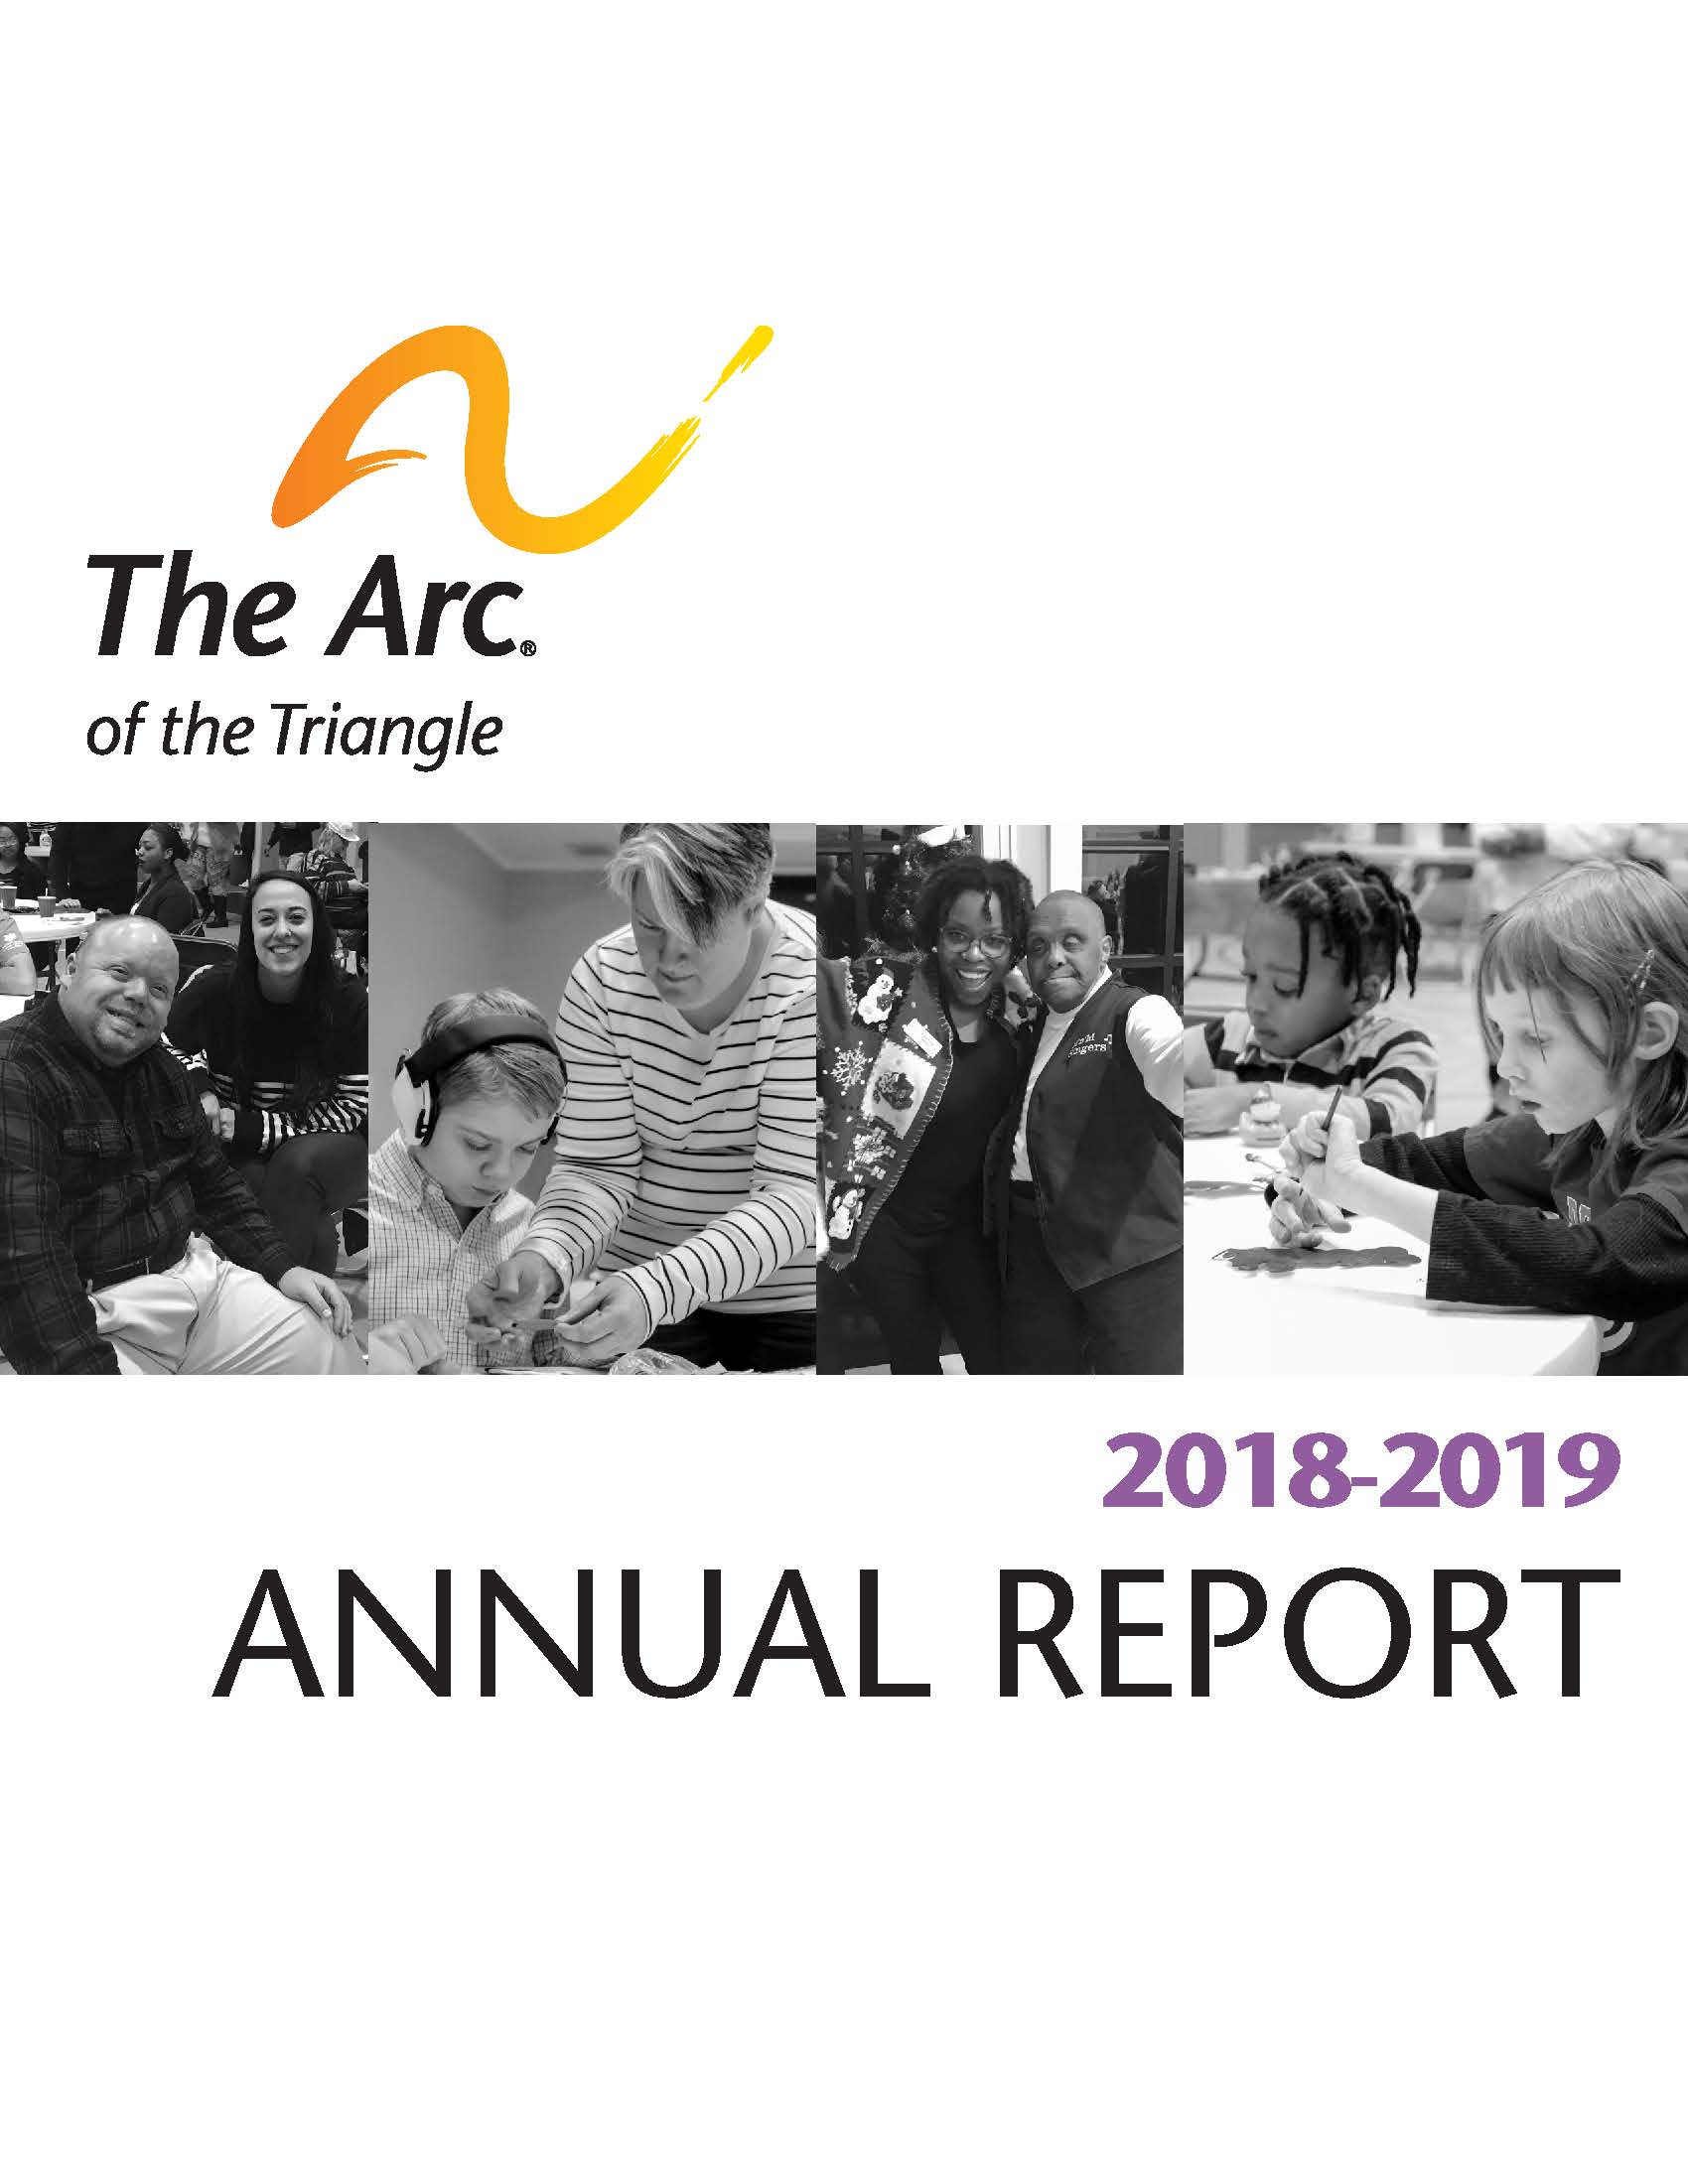 AnnualReport_cover_1819.jpg